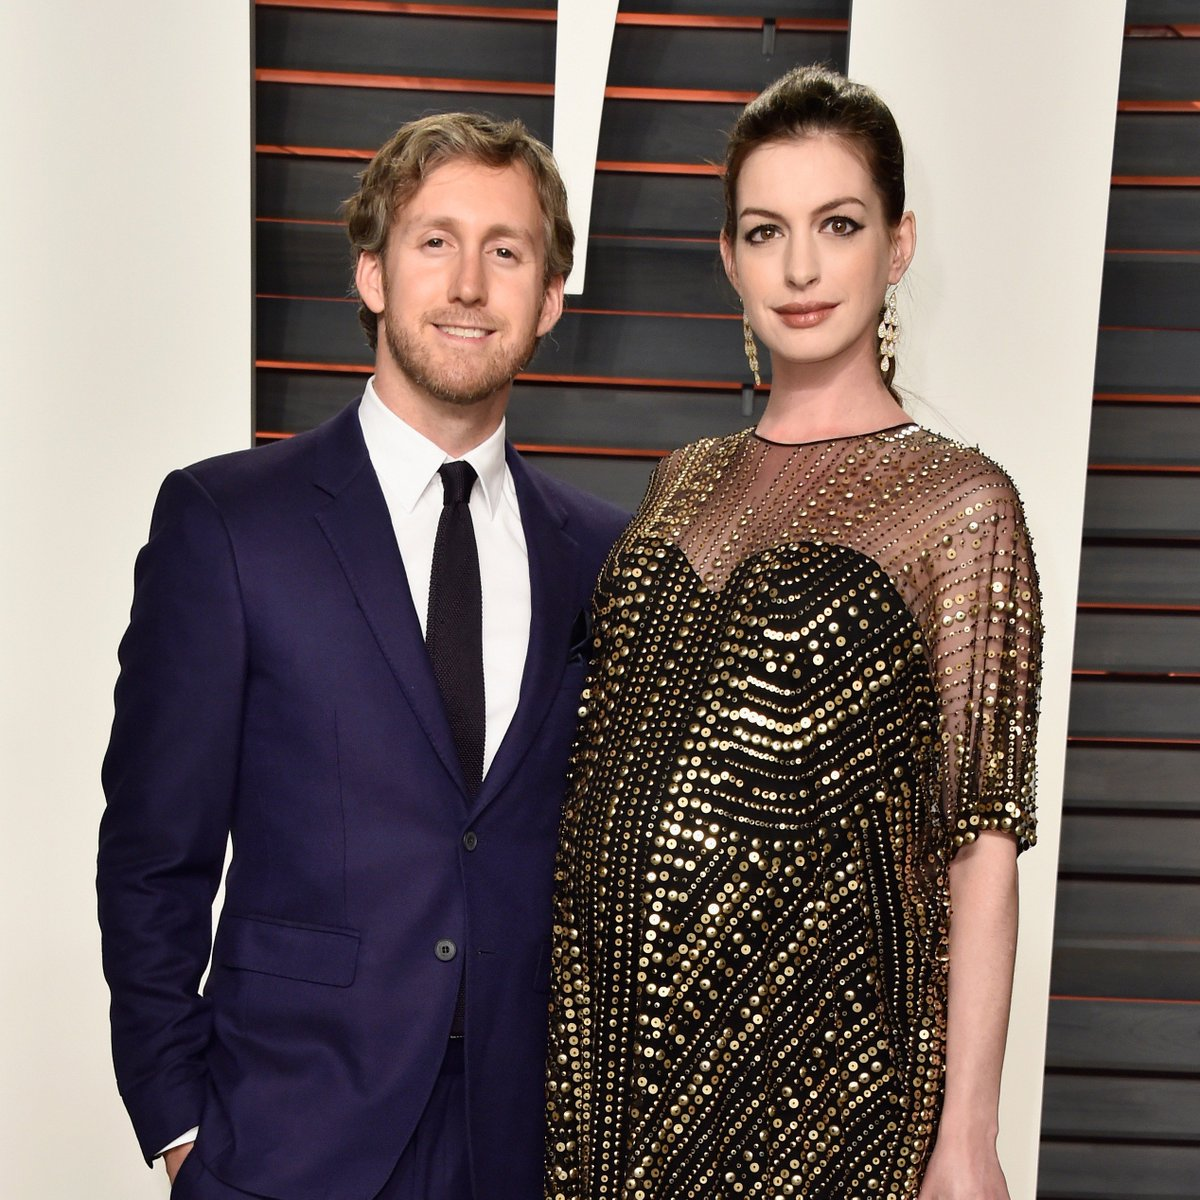 Anne Hathaway Now And Then: Congratulations To Anne Hathaway And Husband Adam Shulman